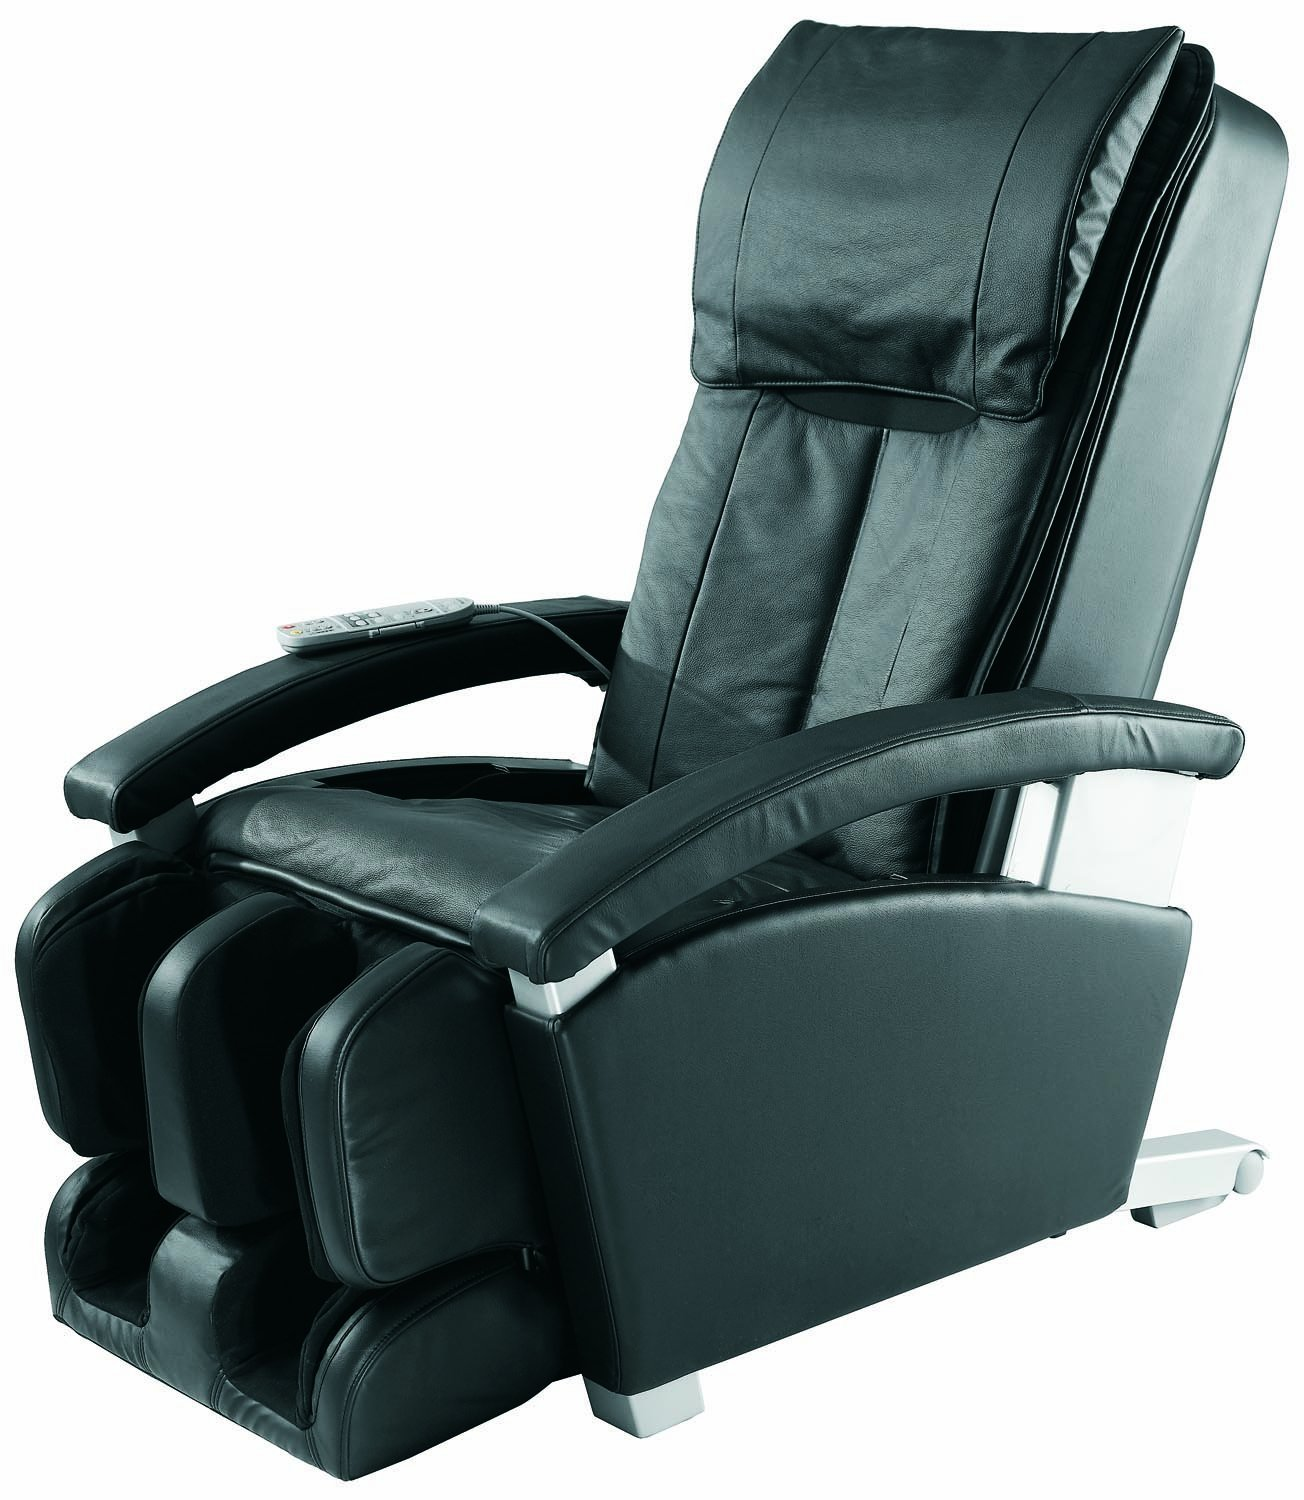 Reflexology Chair Panasonic Massage Chair Ep1285kl Review Massage Chair Hq